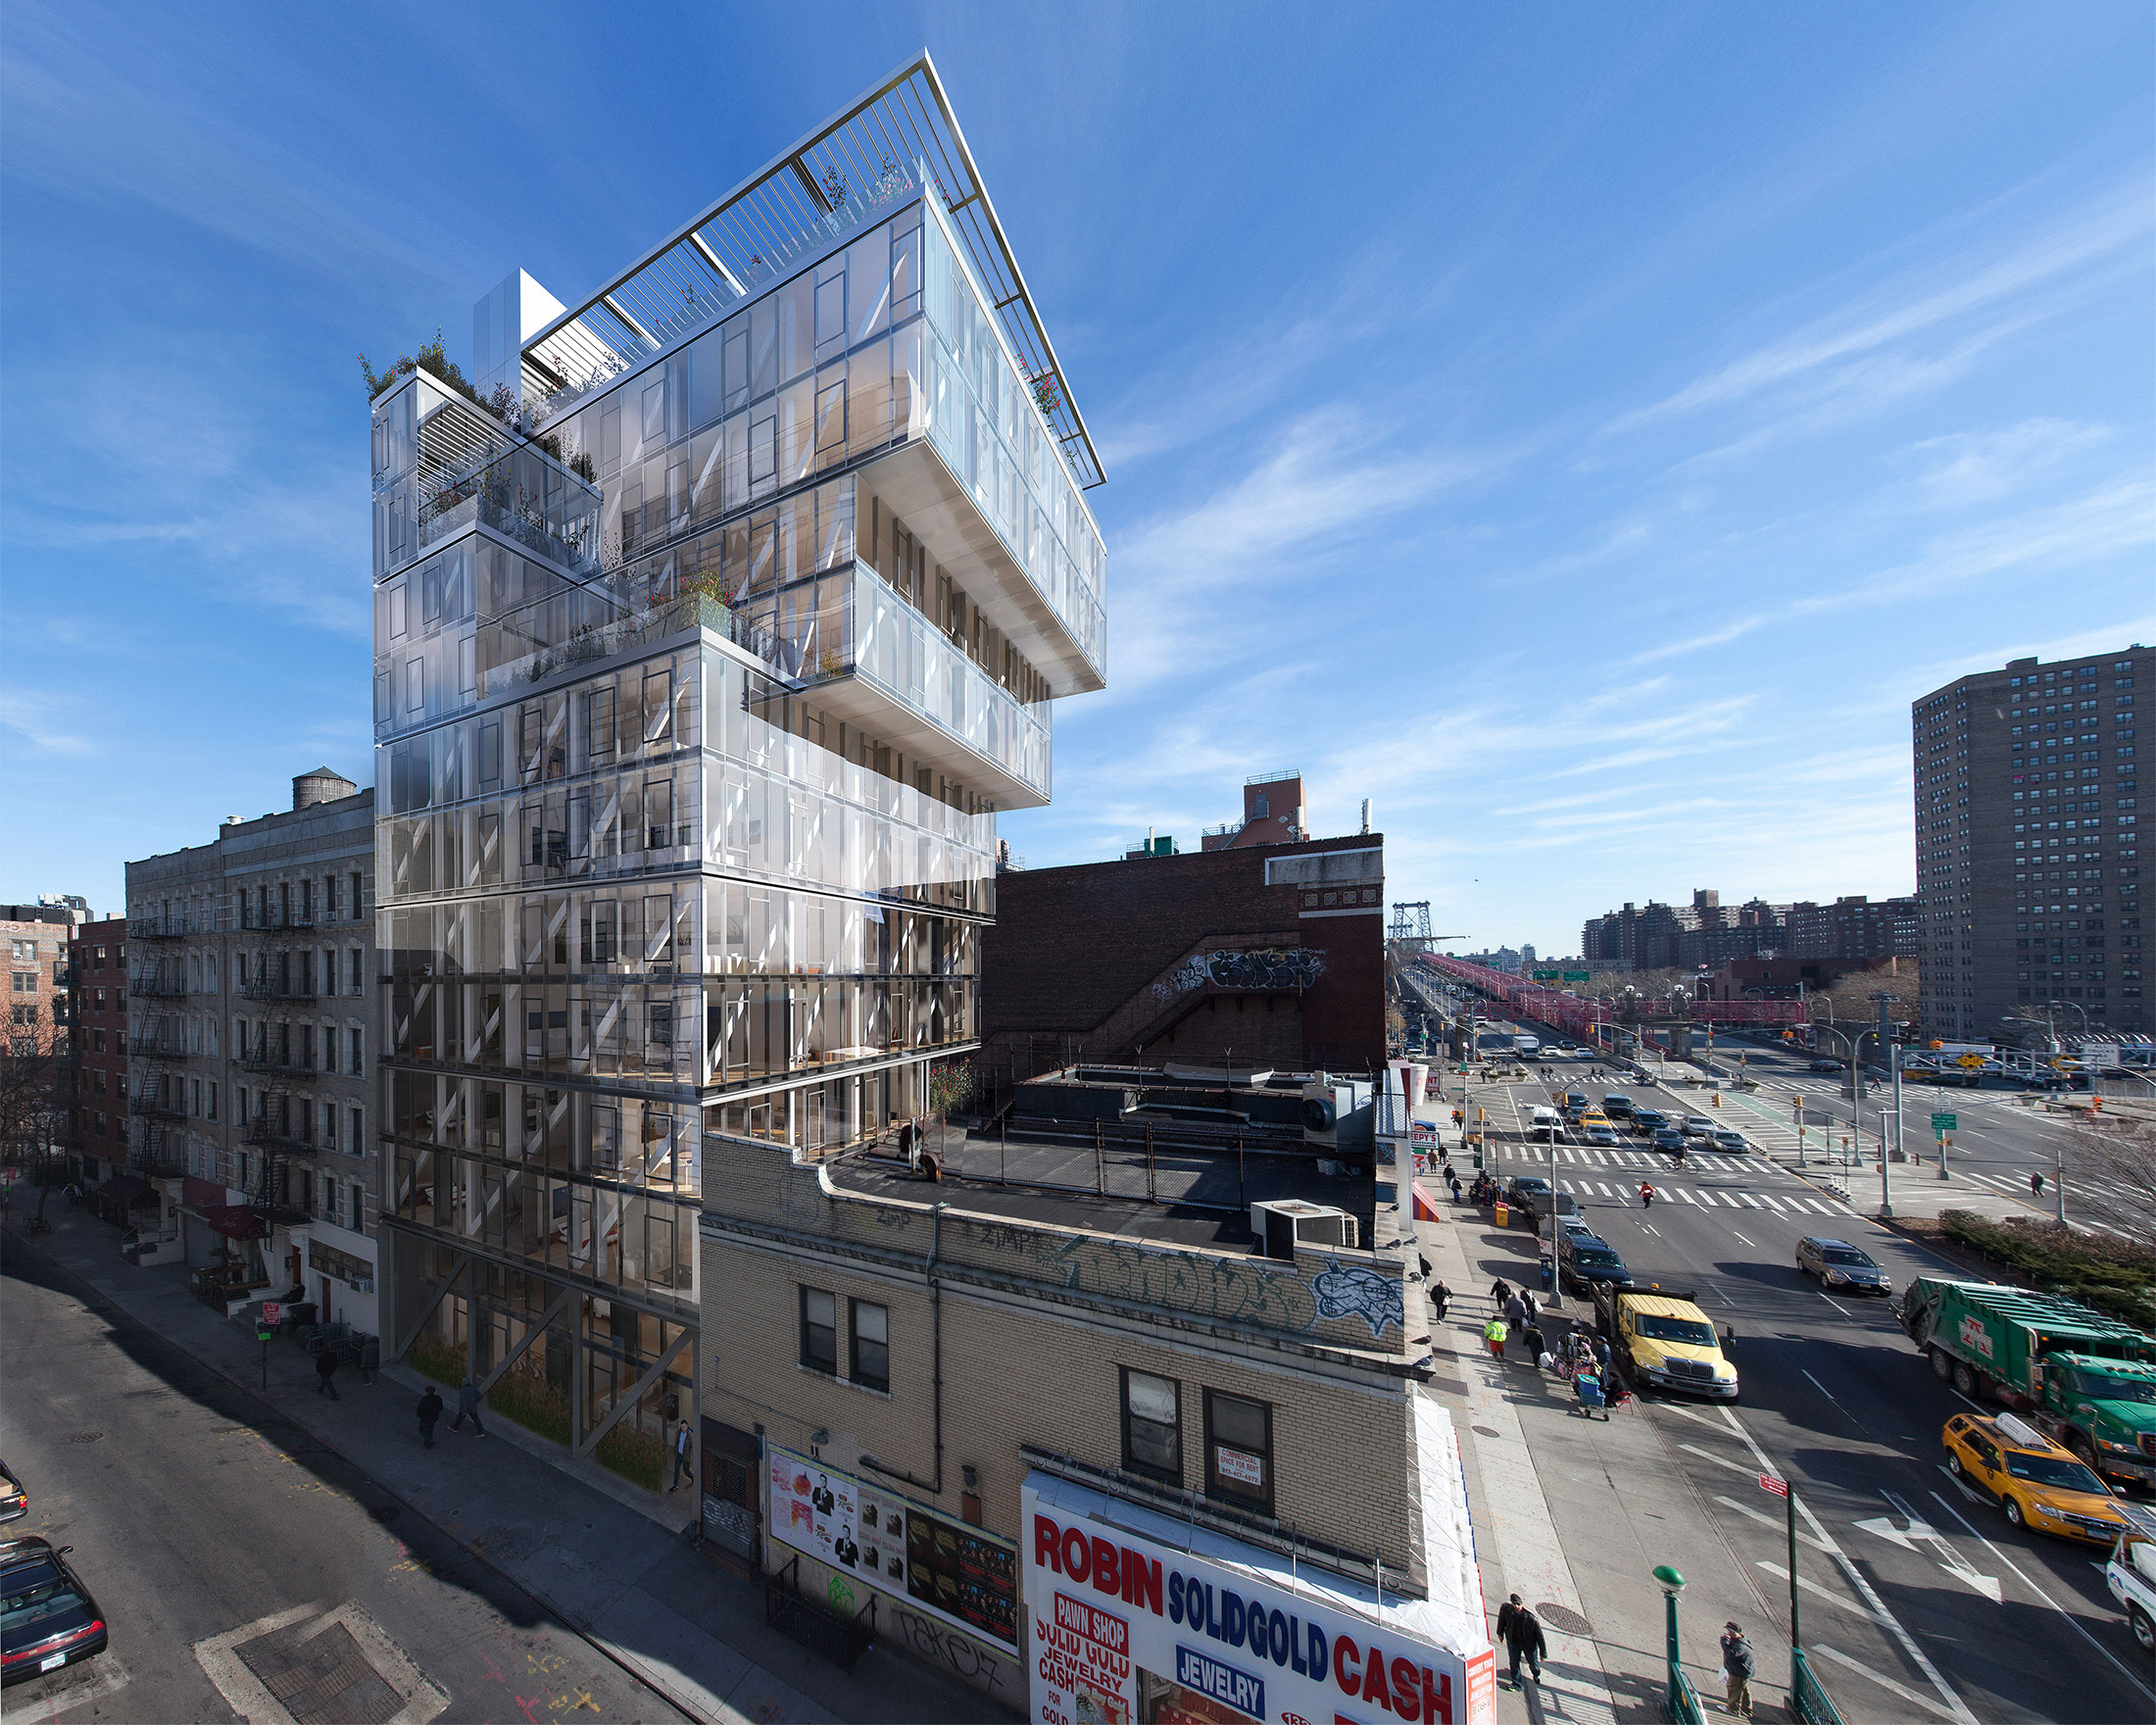 Architectural Rendering of the exterior of the 100 Norfolk Street project located on the Lower East Side, New York City